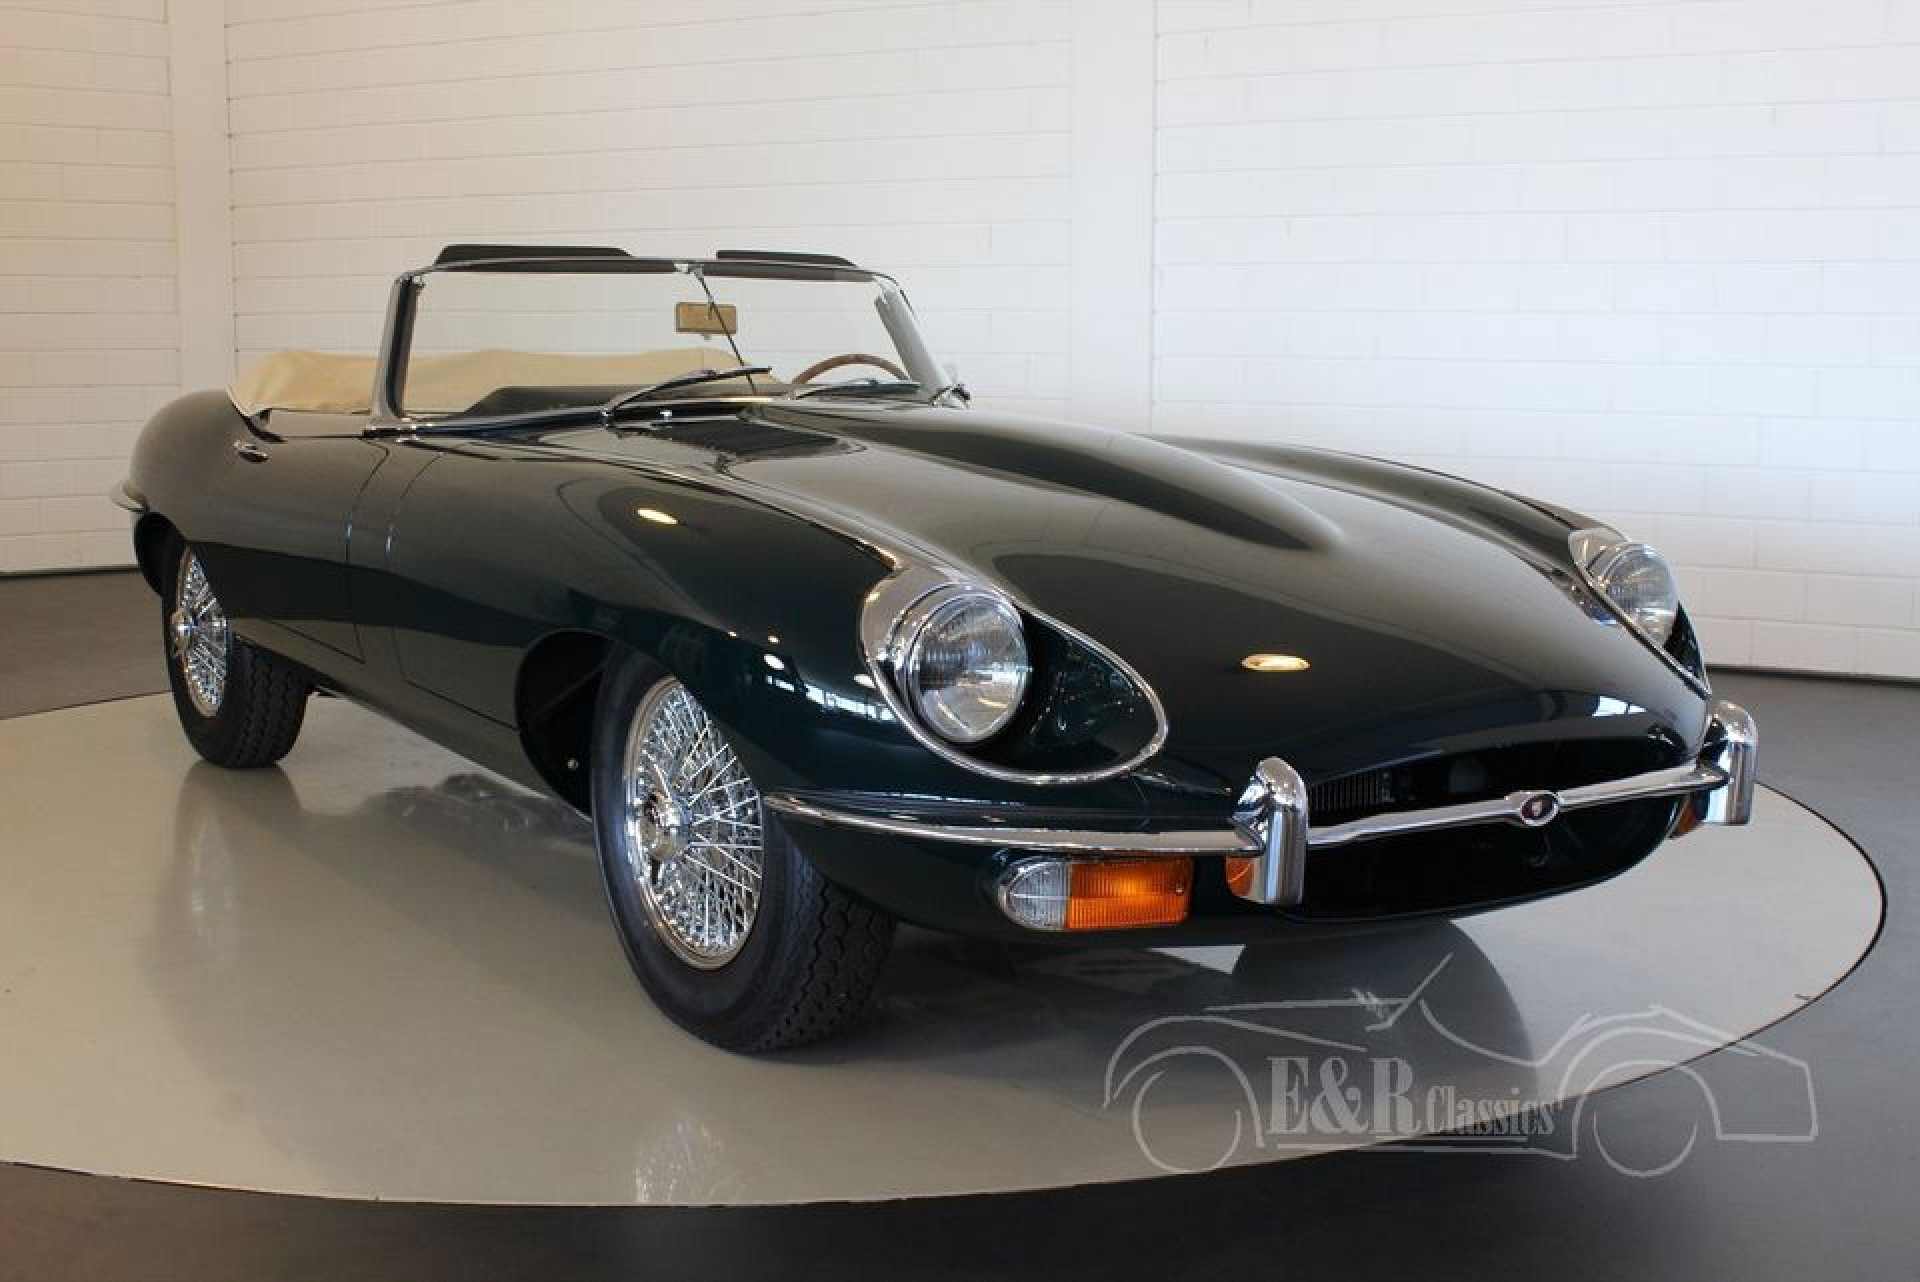 jaguar e type cabriolet 1970 for sale at erclassics. Black Bedroom Furniture Sets. Home Design Ideas